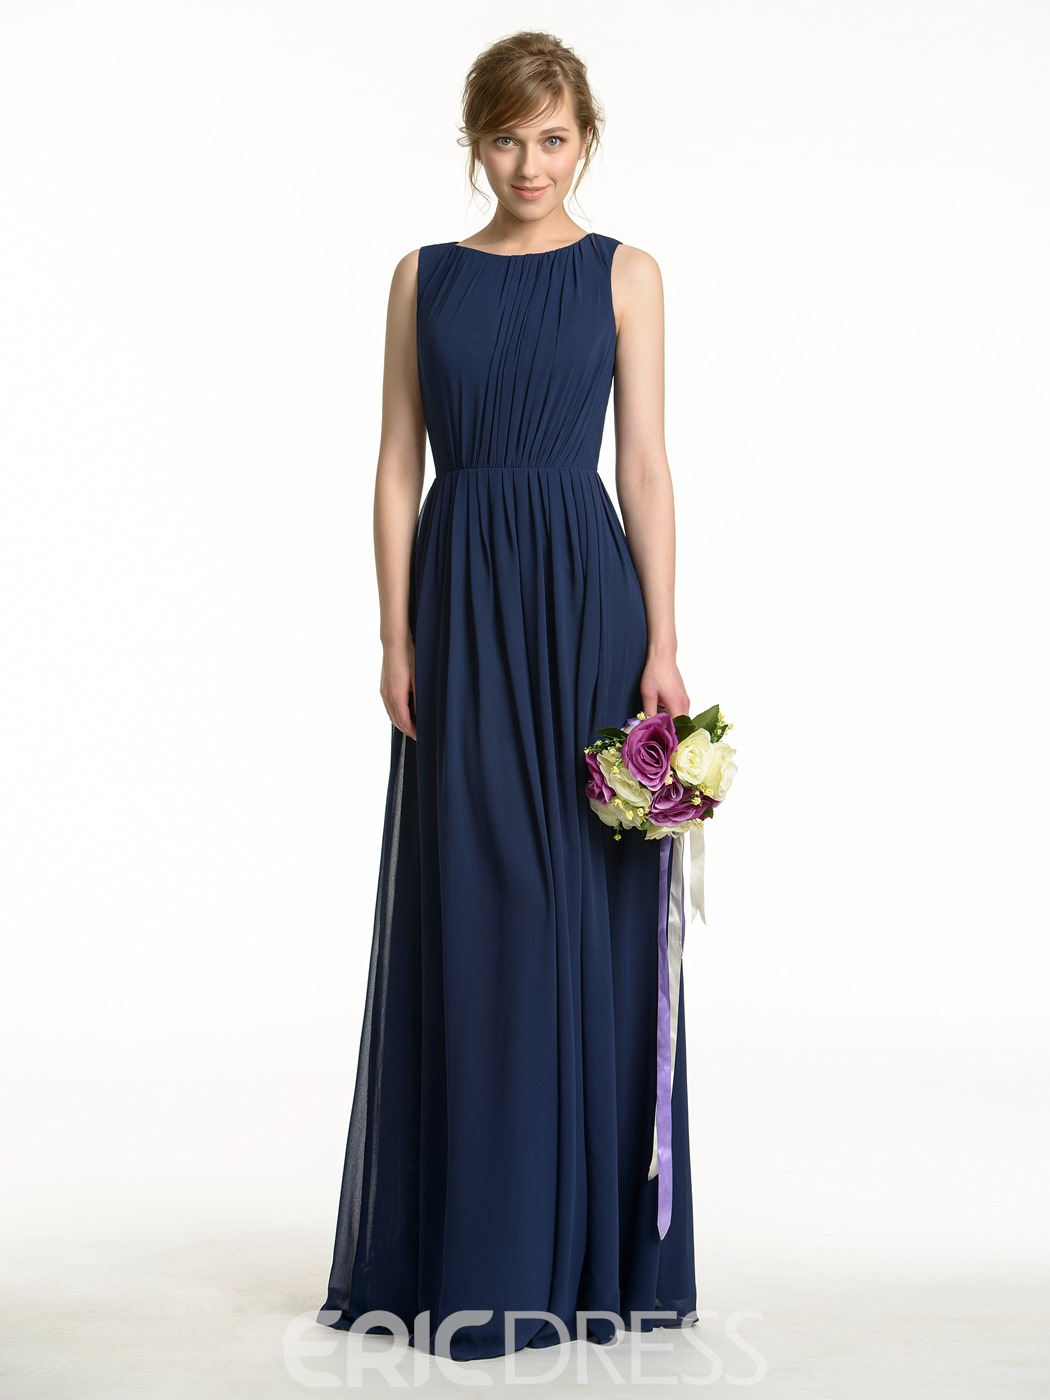 Ericdress High Quality Long Backless Bridesmaid Dress